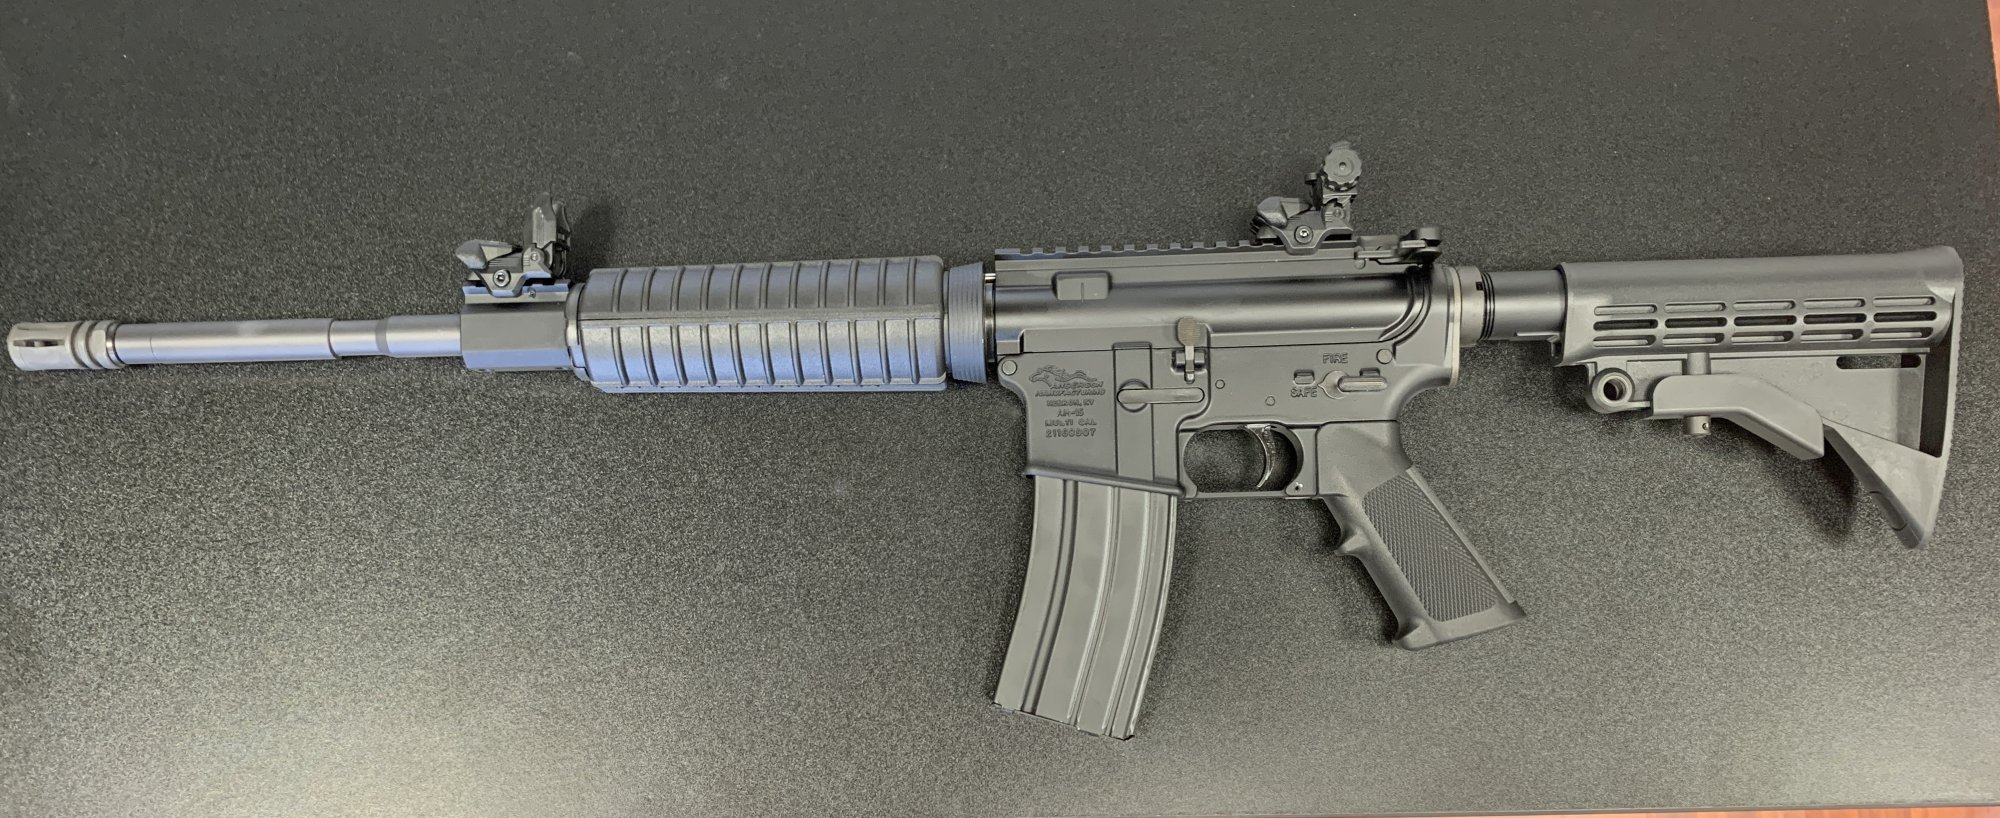 Anderson Manufacturing AM15 Rifle (AR-15) 5.56/223